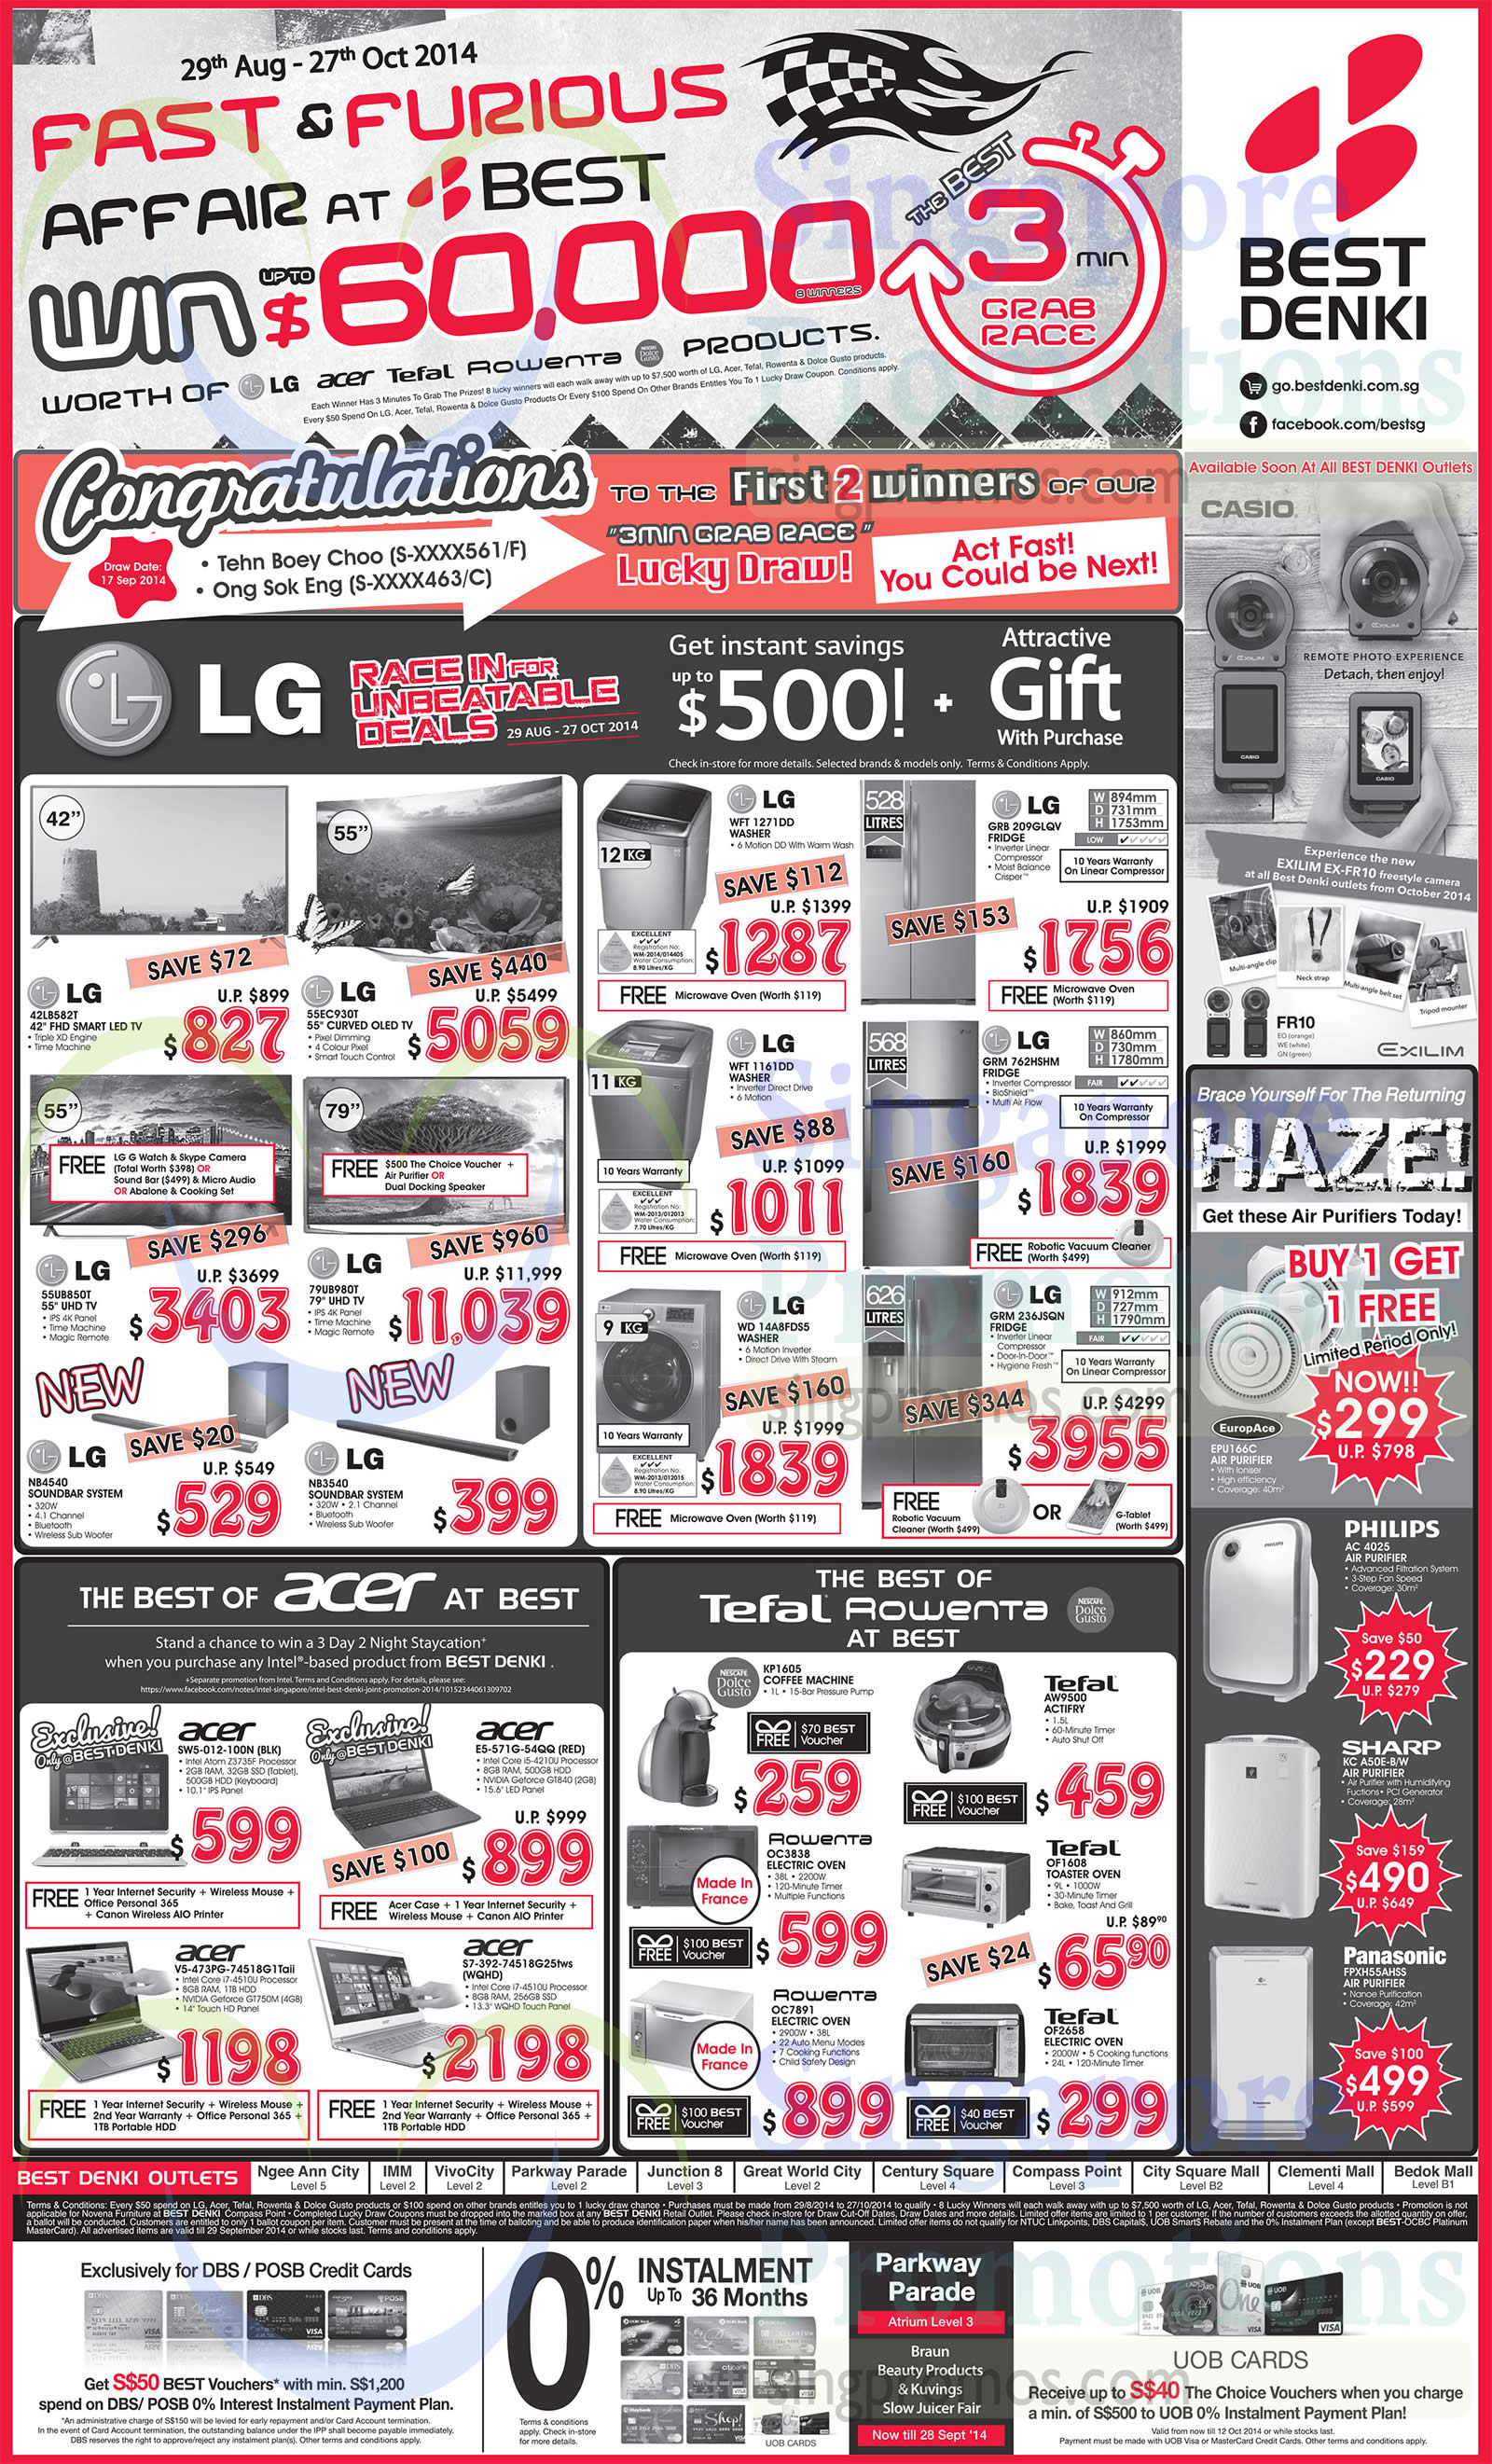 LG 42LB582T TV, LG 55EC930T TV, LG 55UB850T TV, LG 79UB980T TV, LG NB4540 Soundbar, LG NB3540 Soundbar, LG WFT 1271DD Washer, LG WFT 1161DD Washer, LG WD 14ABFDS5 Washer, LG GRB 209GLQV Fridge, LG GRM 762HSHM Fridge, LG GRM 236JSQN Fridge, EuropAce EPU166C Air Purifier, Philips AC 4025 Air Purifier, Sharp KC A50E-B/W Air Purifier, Panasonic FPXH55AHSS Air Purifier, Nescafe Dolce Gusto KP1605 Coffee Machine, Tefal AW9500 Actifry, Tefal OF1608 Oven, Rowenta OC3838 Oven, Rowenta OC7891 Oven, Tefal OF2658 Oven, Acer E5-571G-54QQ Notebook, Acer S7-392-74518G25tws Notebook, Acer V5-473PG-74518G1Taii Notebook and Acer SW5-012-100N Notebook